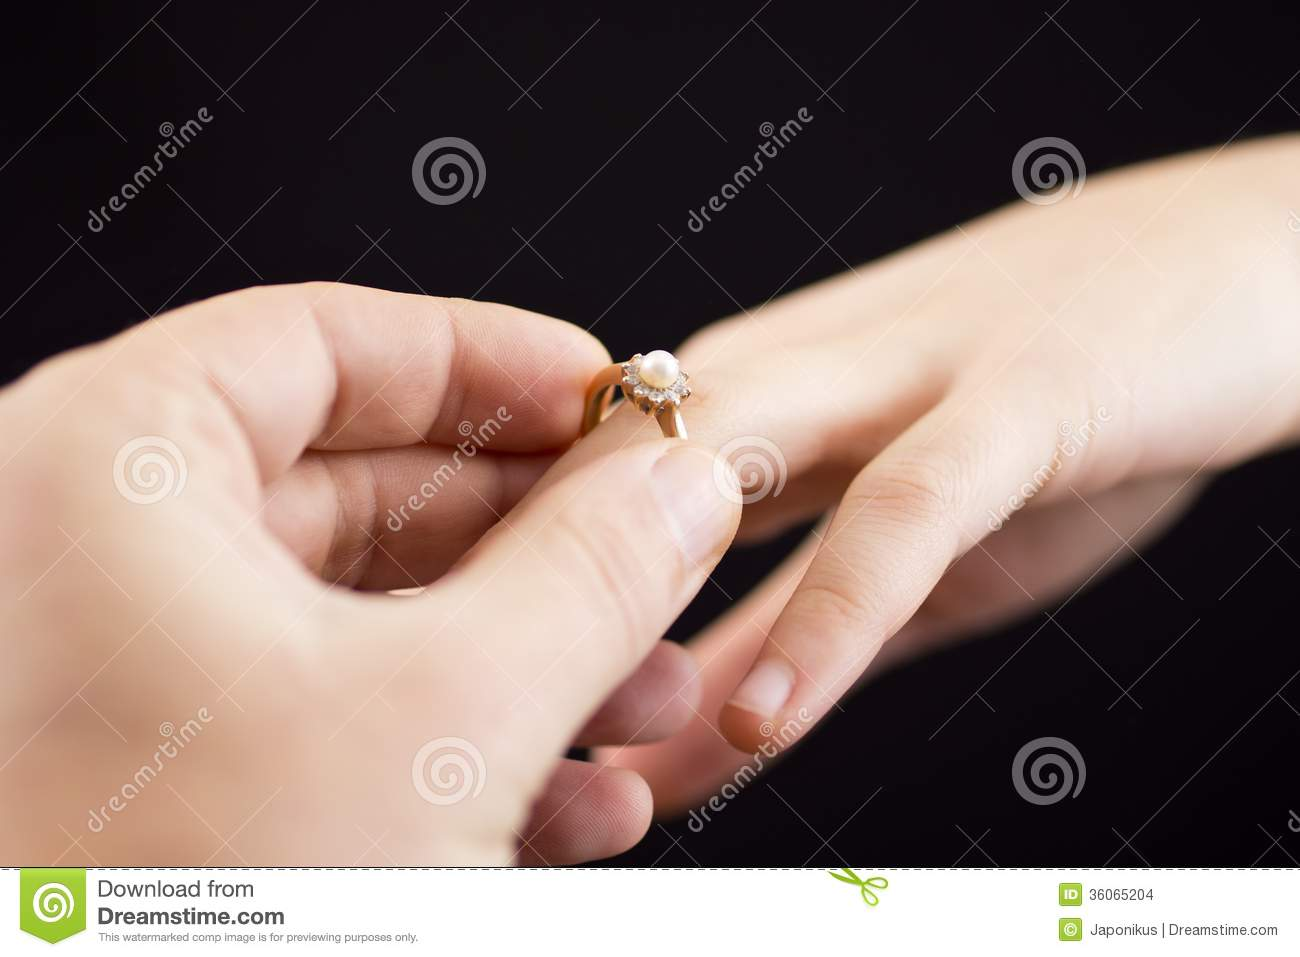 Putting A Ring On Girl\'s Hand Stock Photo - Image of hand ...